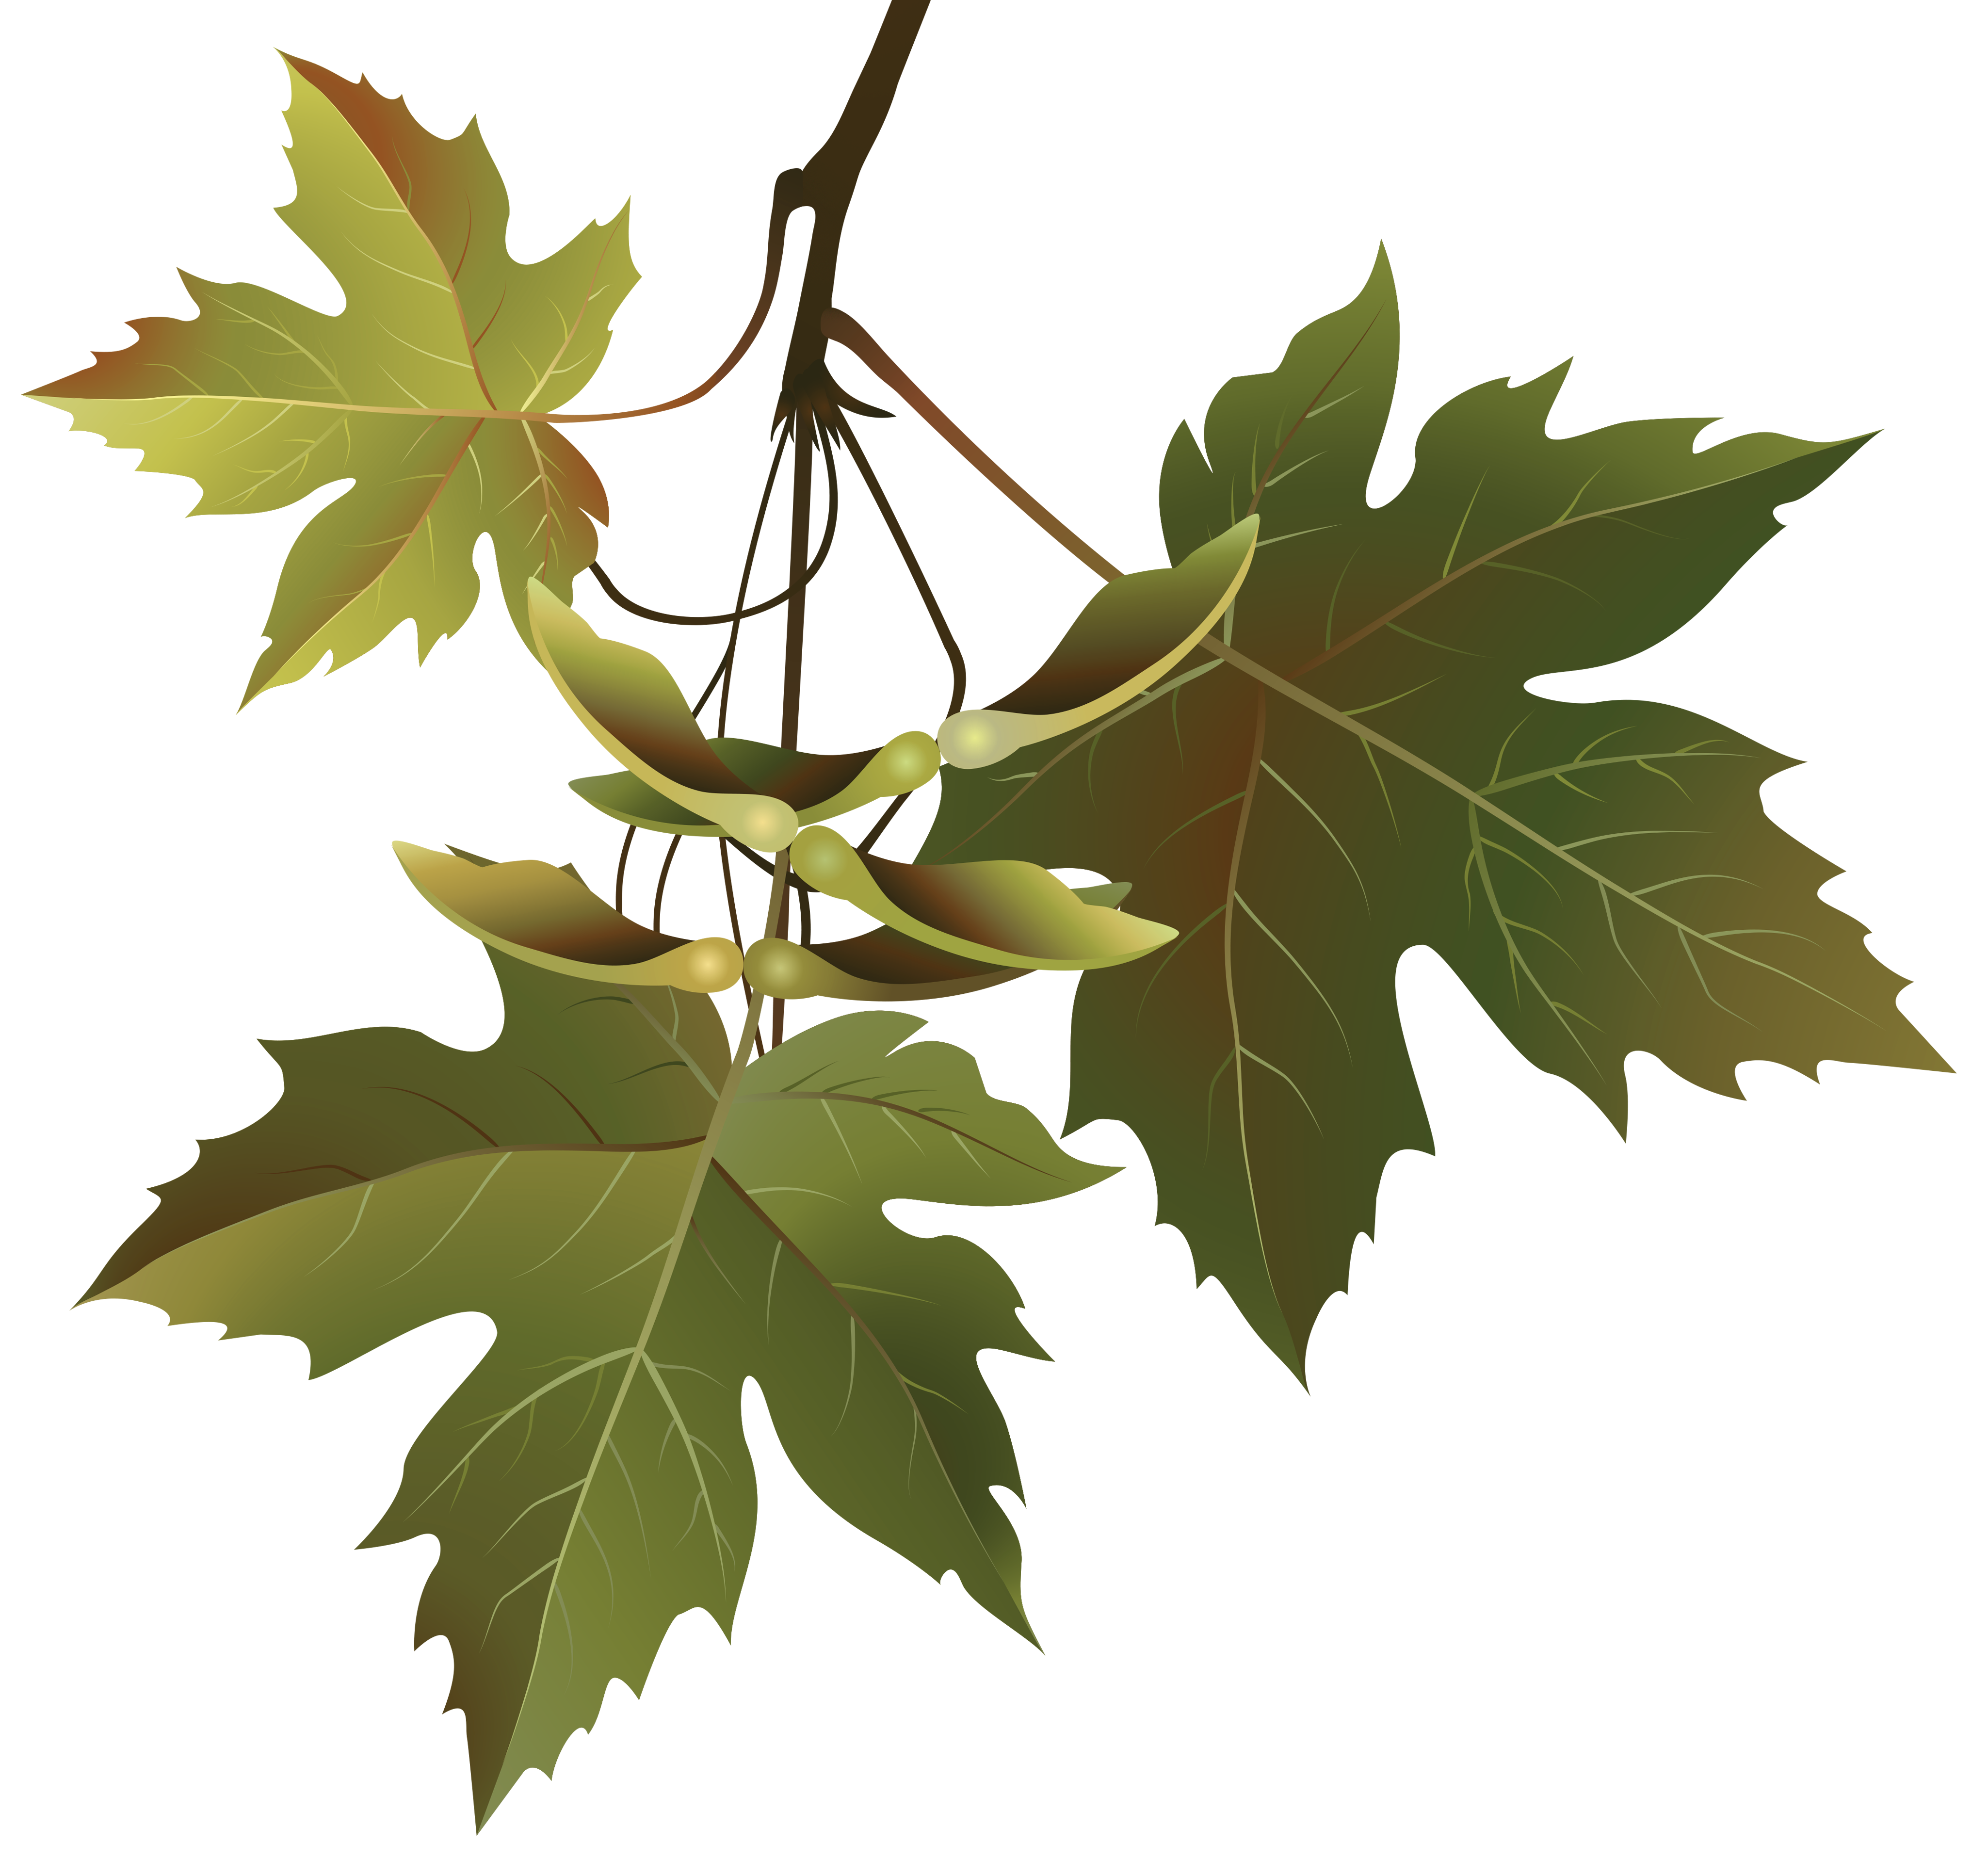 Branch with leaves png. Autumn clipart image gallery